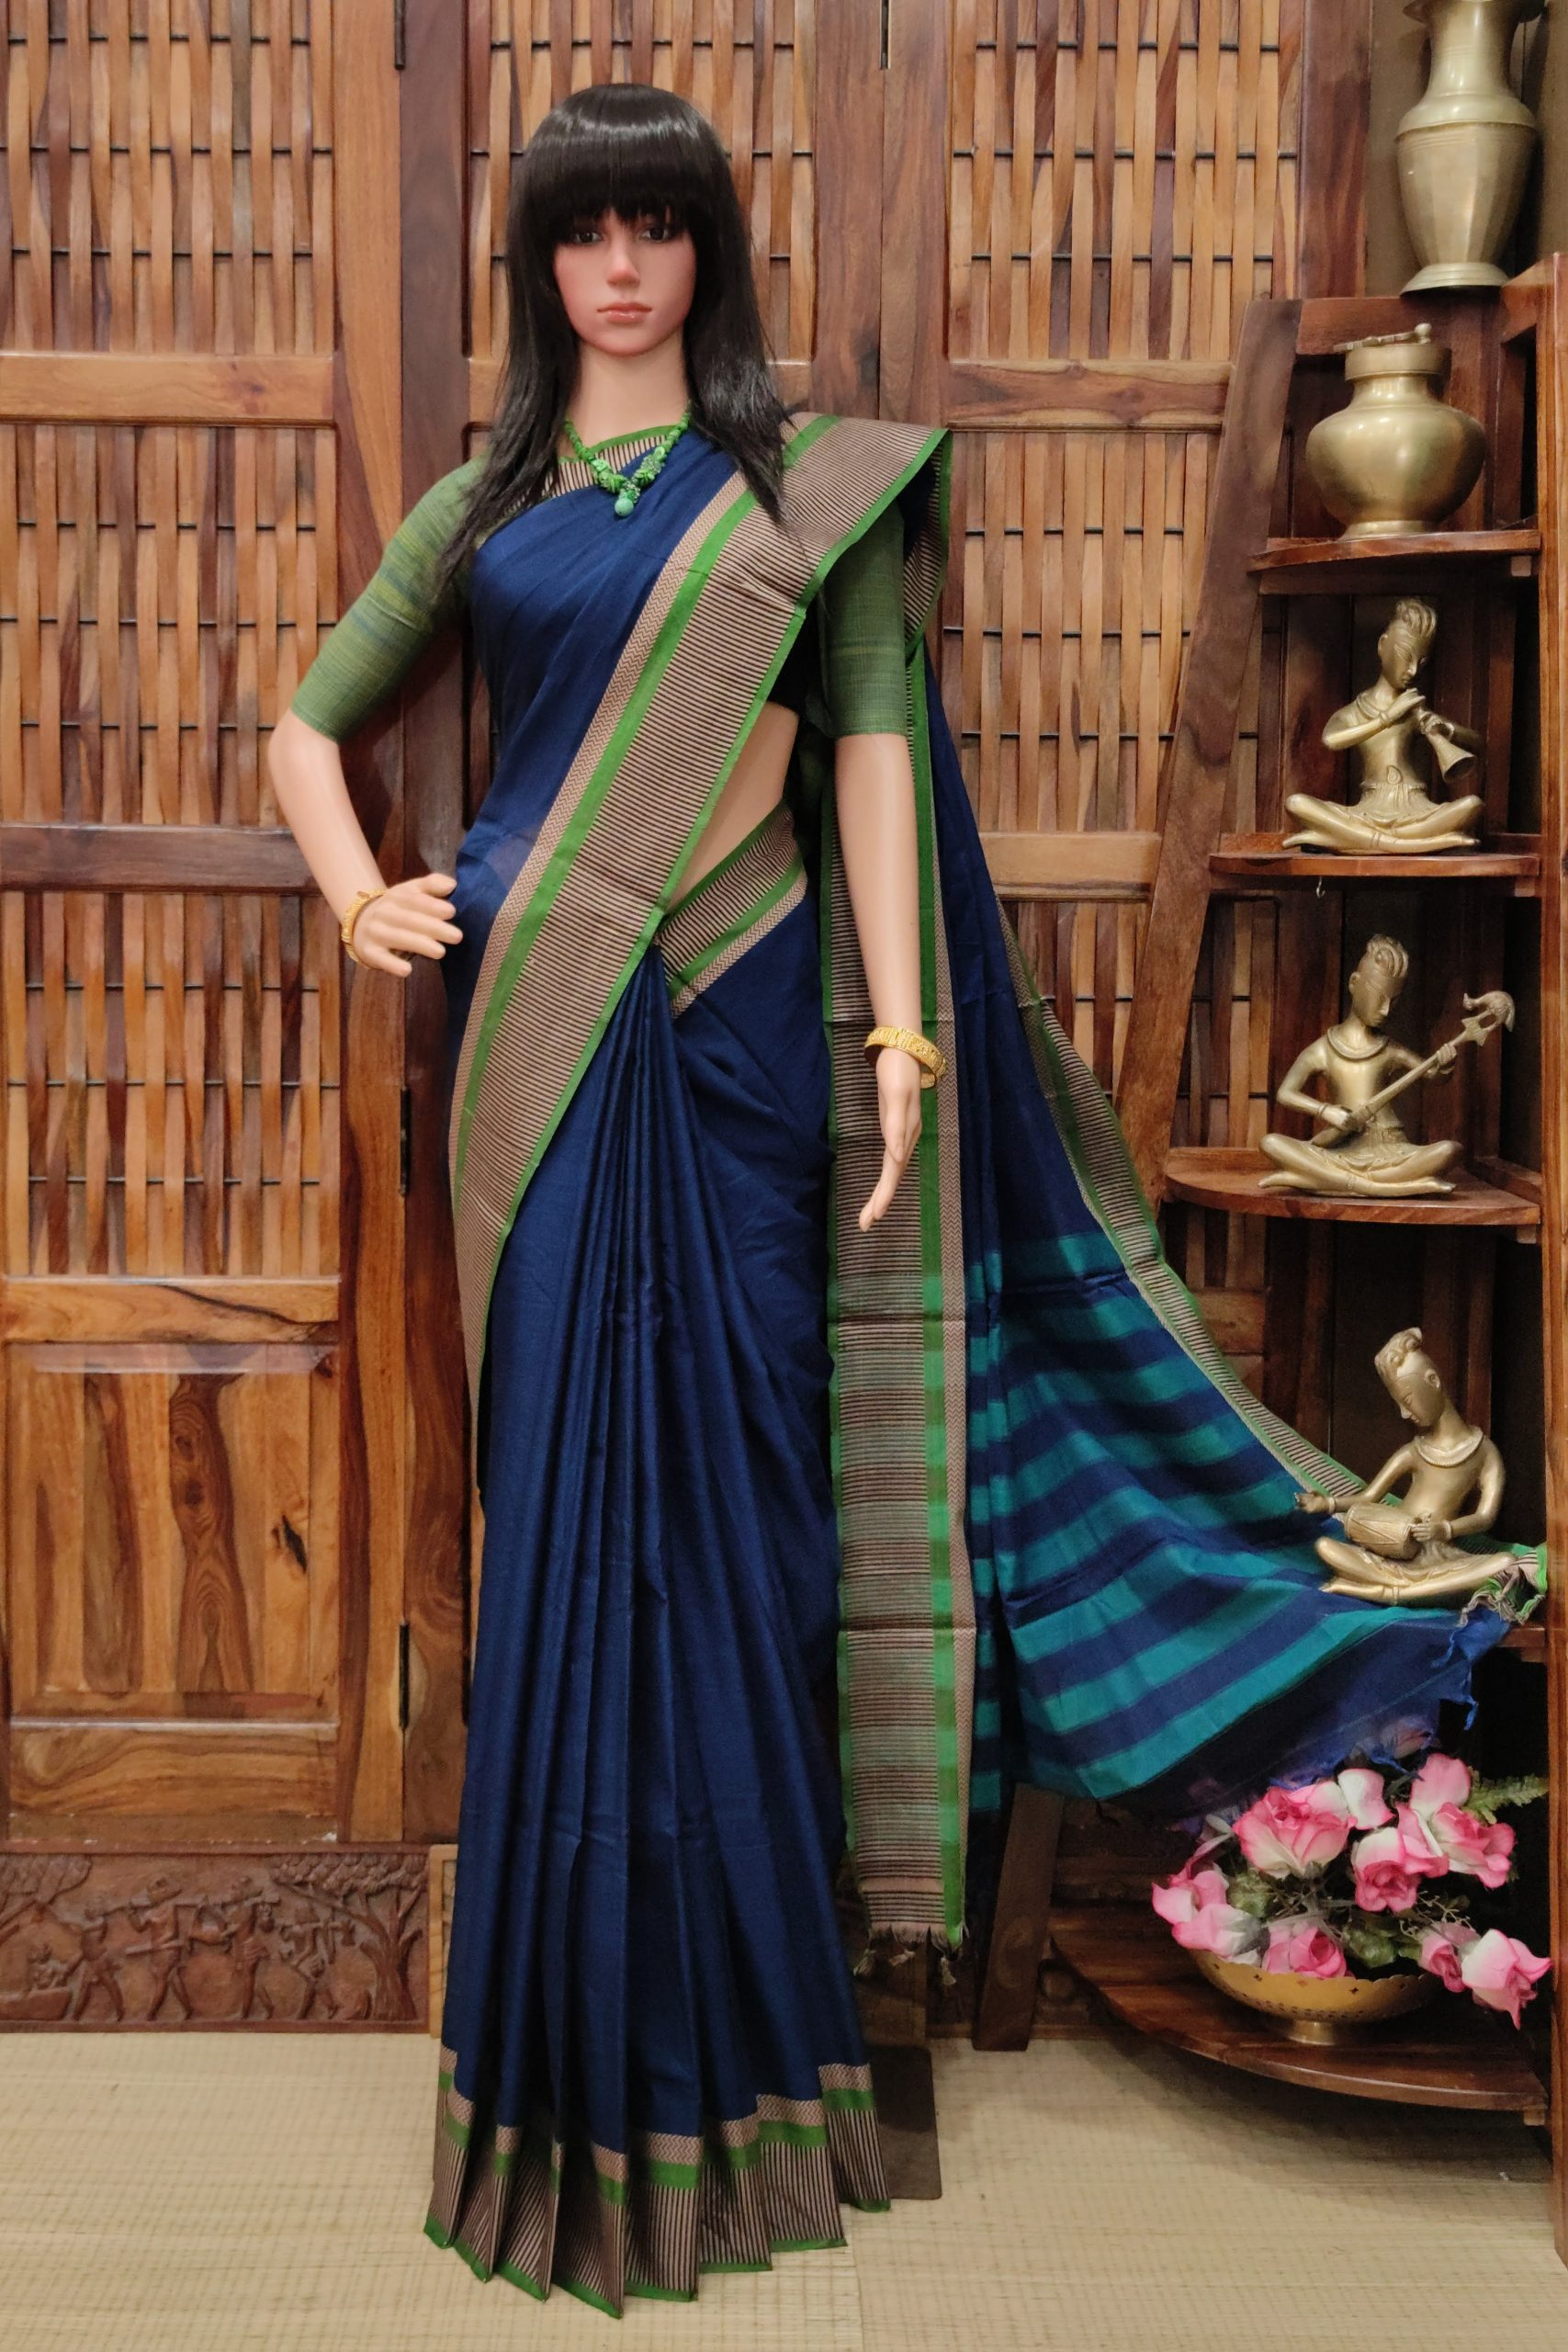 Maninga - Mercerized Pearl Cotton Saree